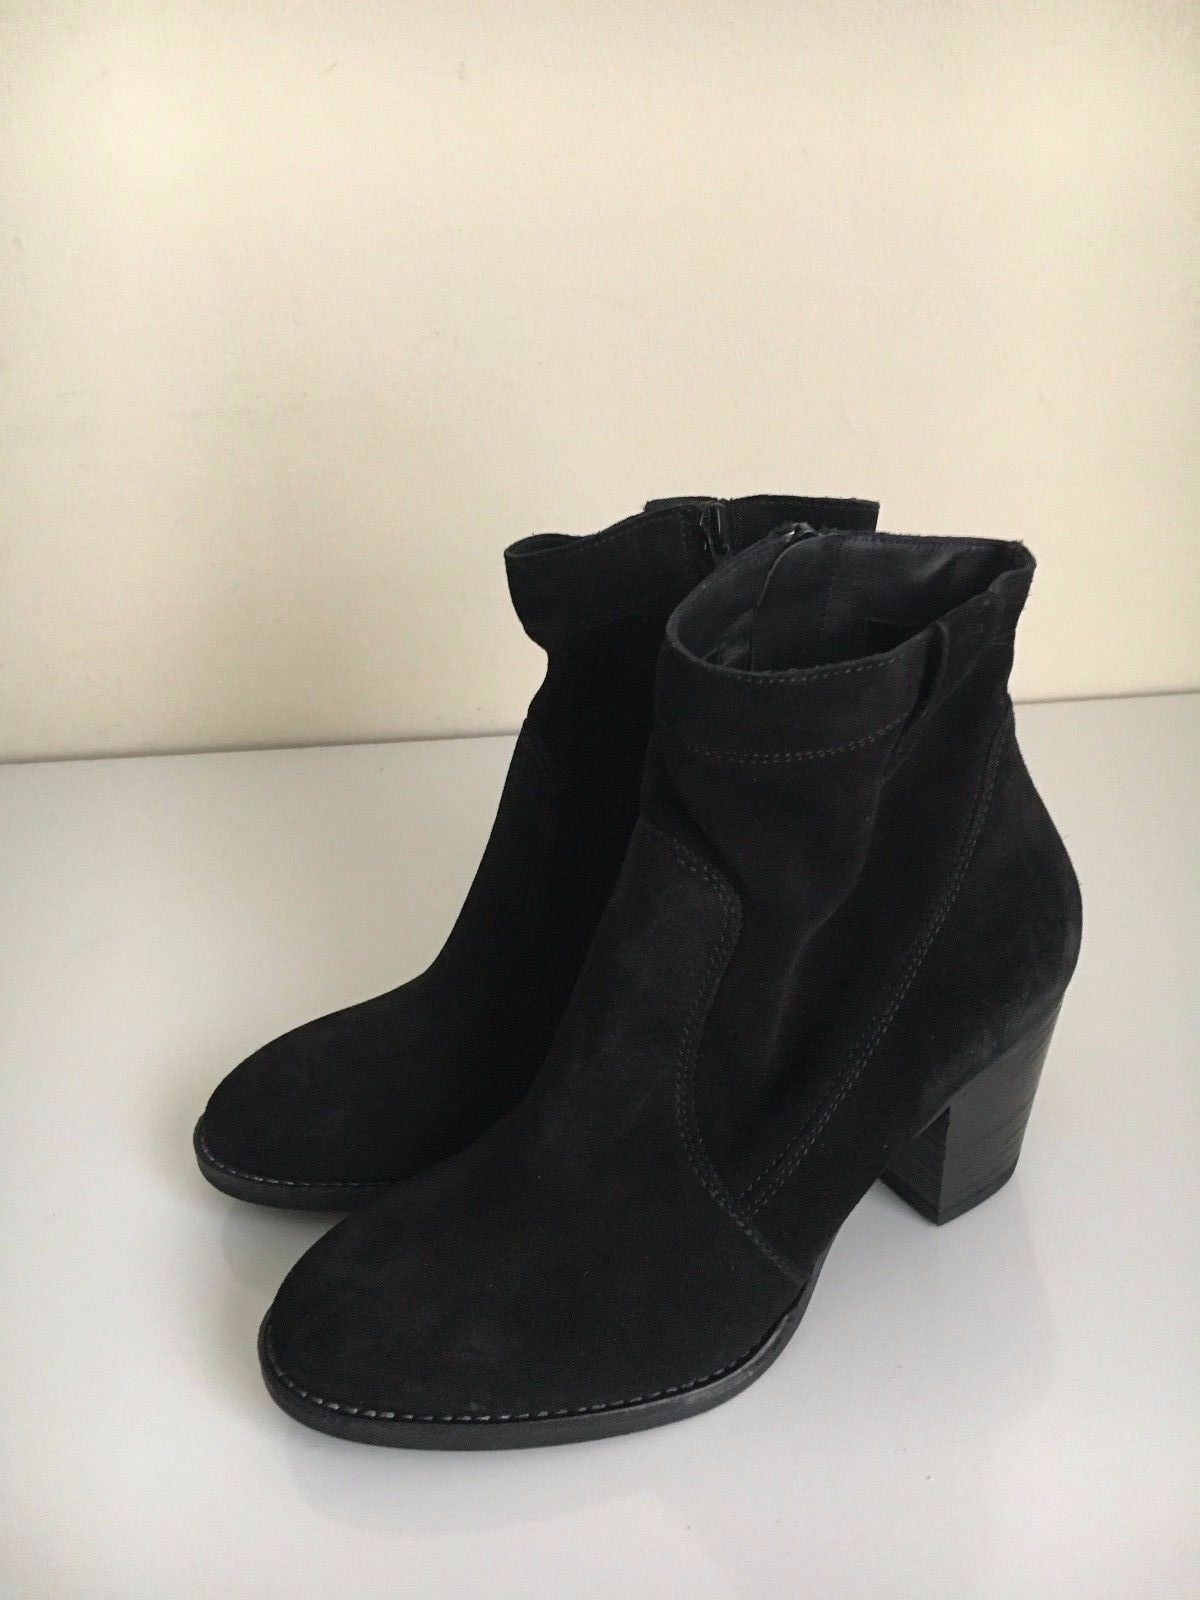 NEW Paul Green Jax Bootie 3 5.5 Black Suede Boot Ankle  389 US 5.5 3